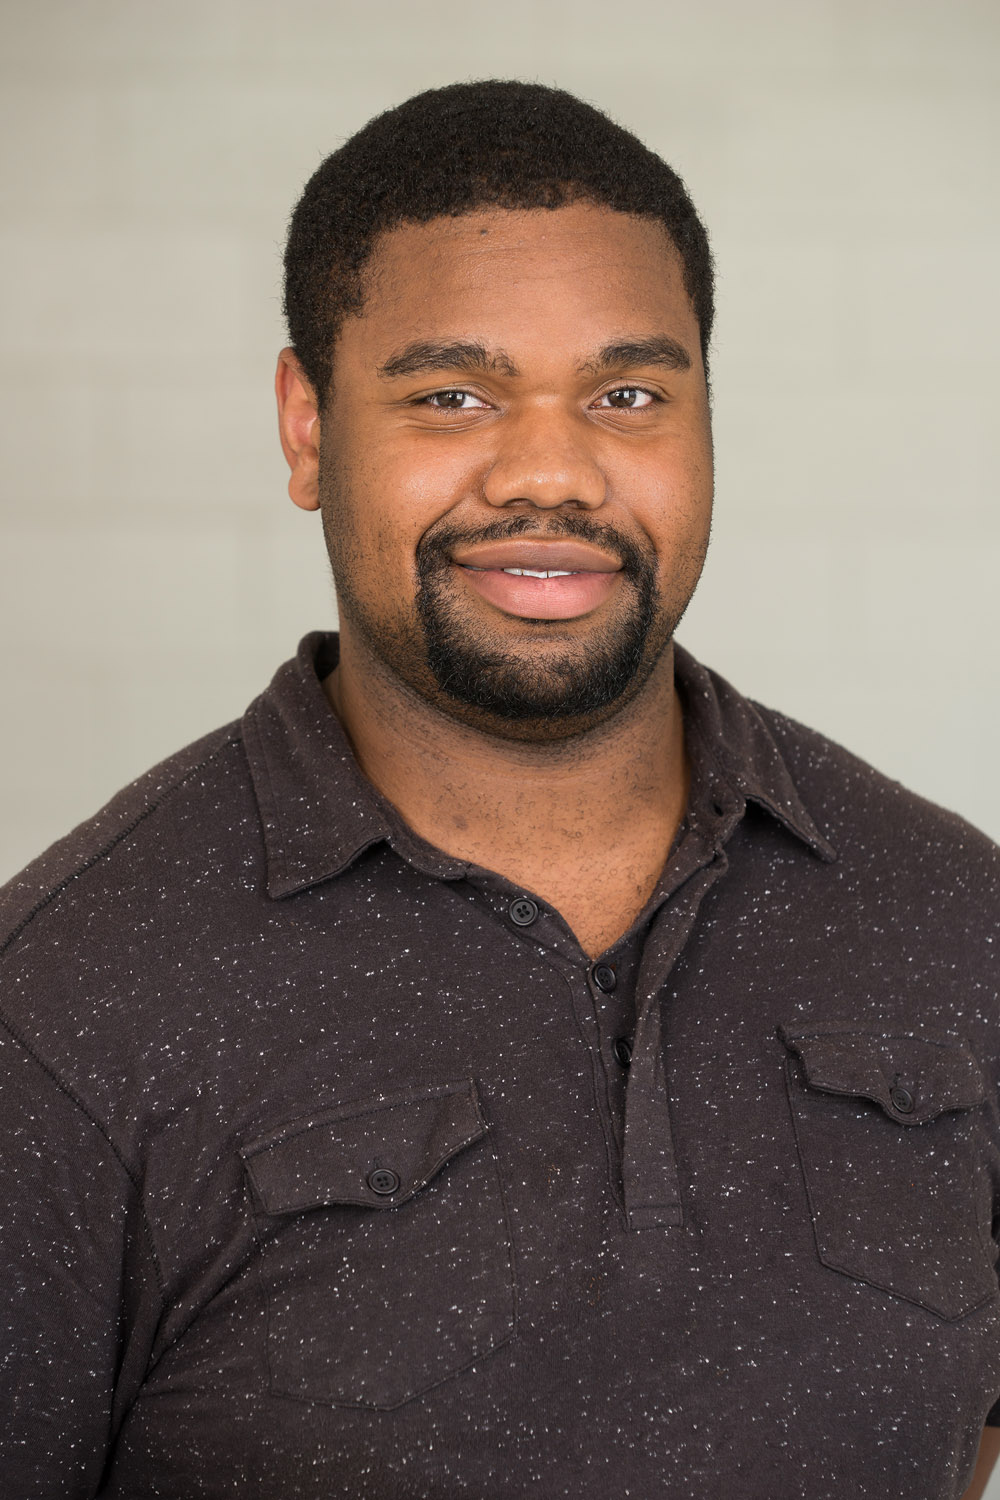 Marvin Richards Mr. Richards is a 2012 graduate of University of Virginia where he studied Political & Social Thought. Originally from Virginia, he moved to Atlanta in 2012 to begin his teaching career. Mr. Richards' favorite part of teaching is watching scholars' brains act as sponges as they learn and soak in so much new information within an academic school year.